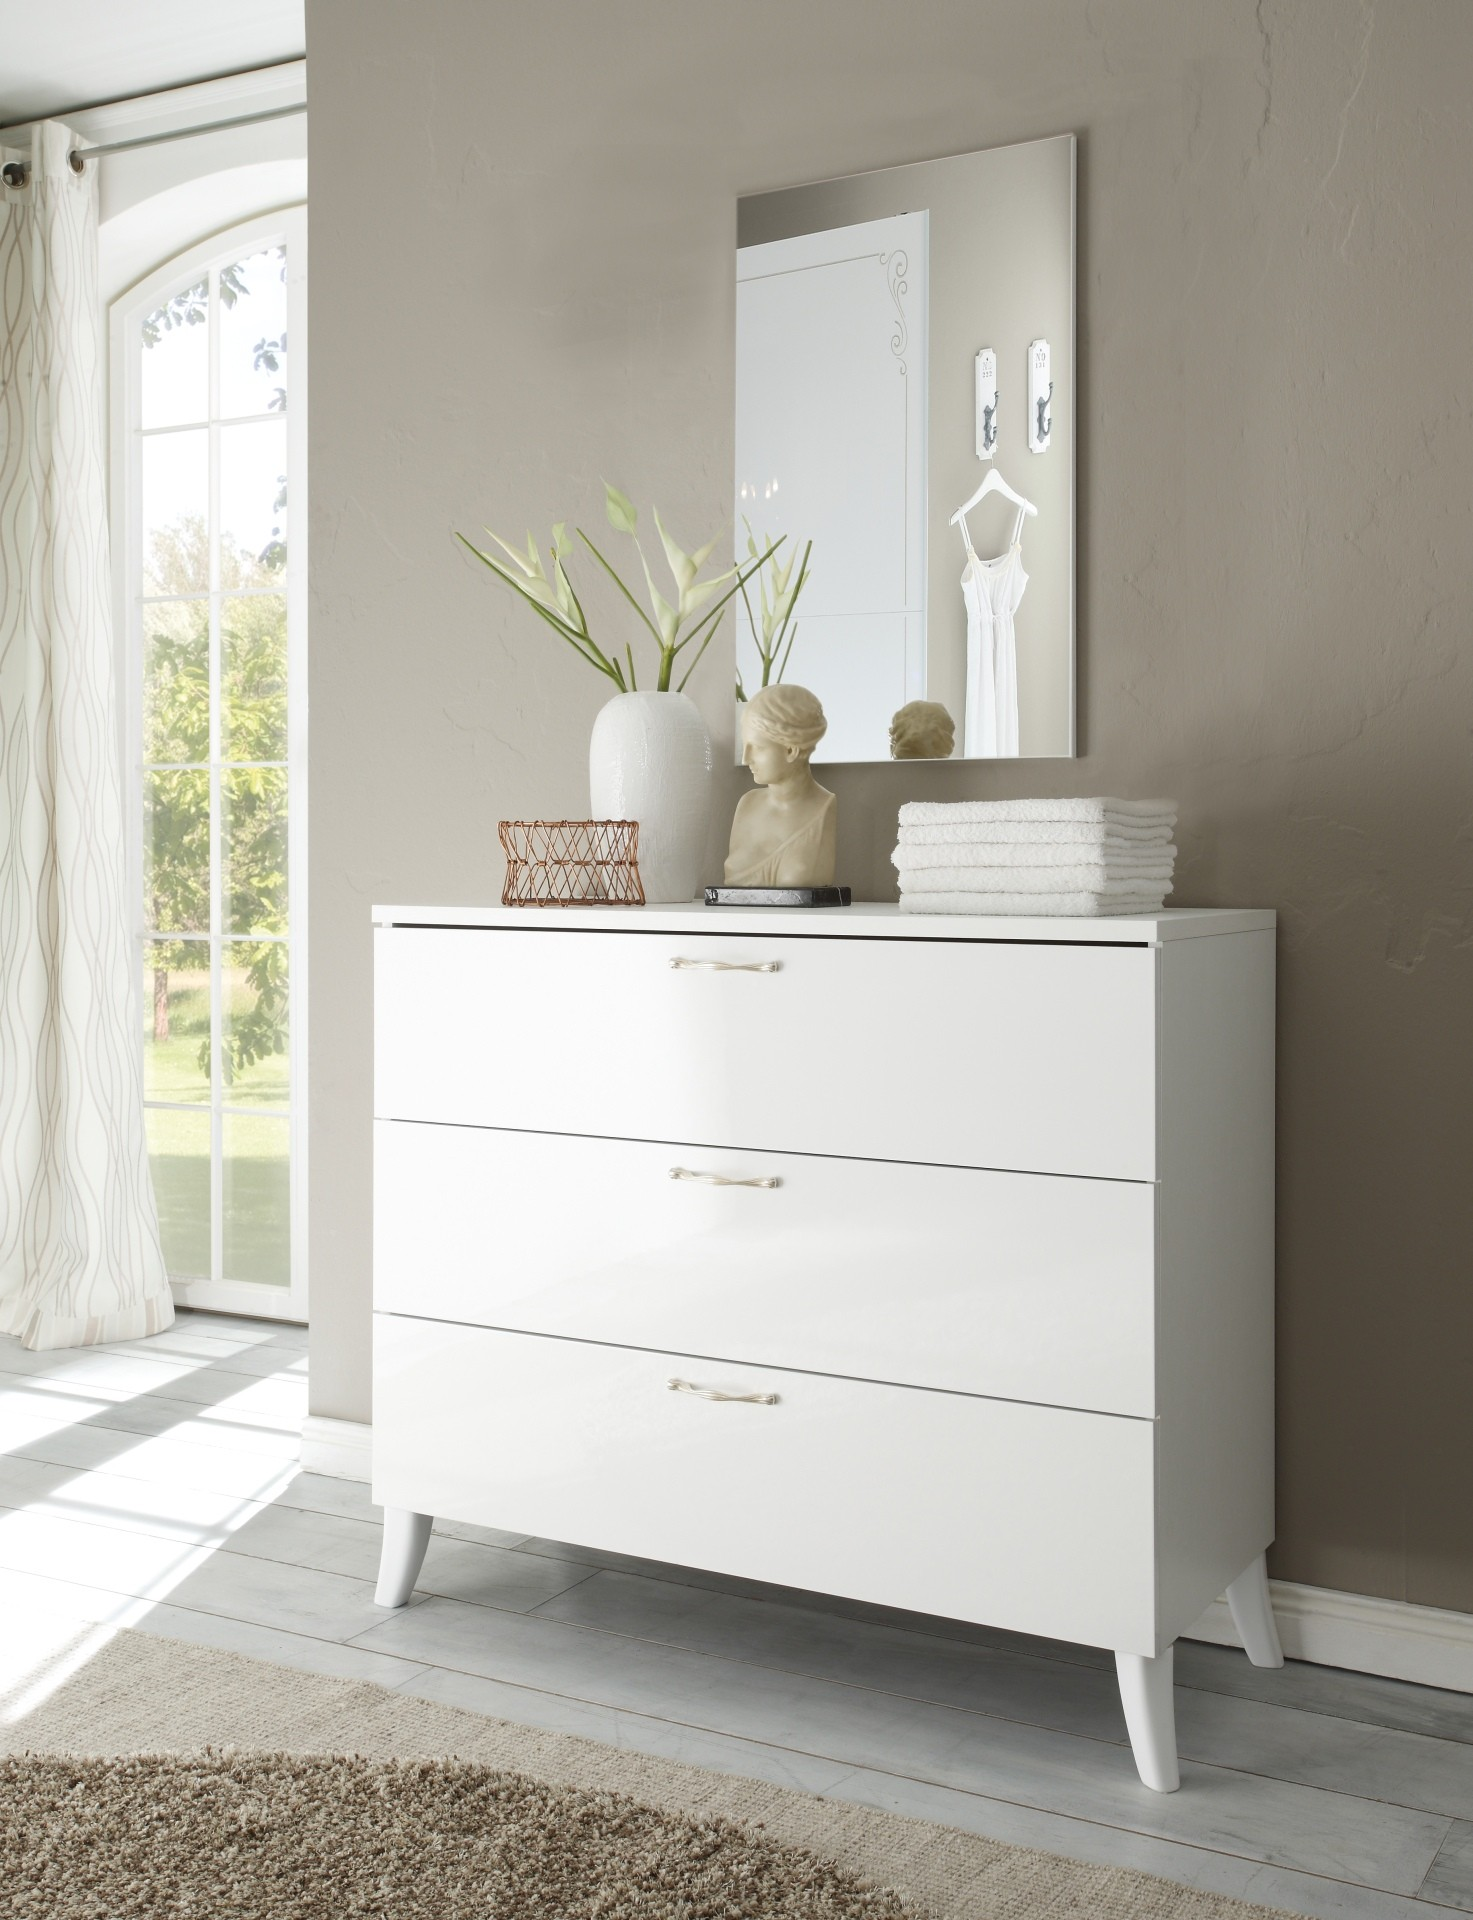 Design Lacquered Furniture mila lacquered chest of drawers with soft close furniture by room sena home furniture